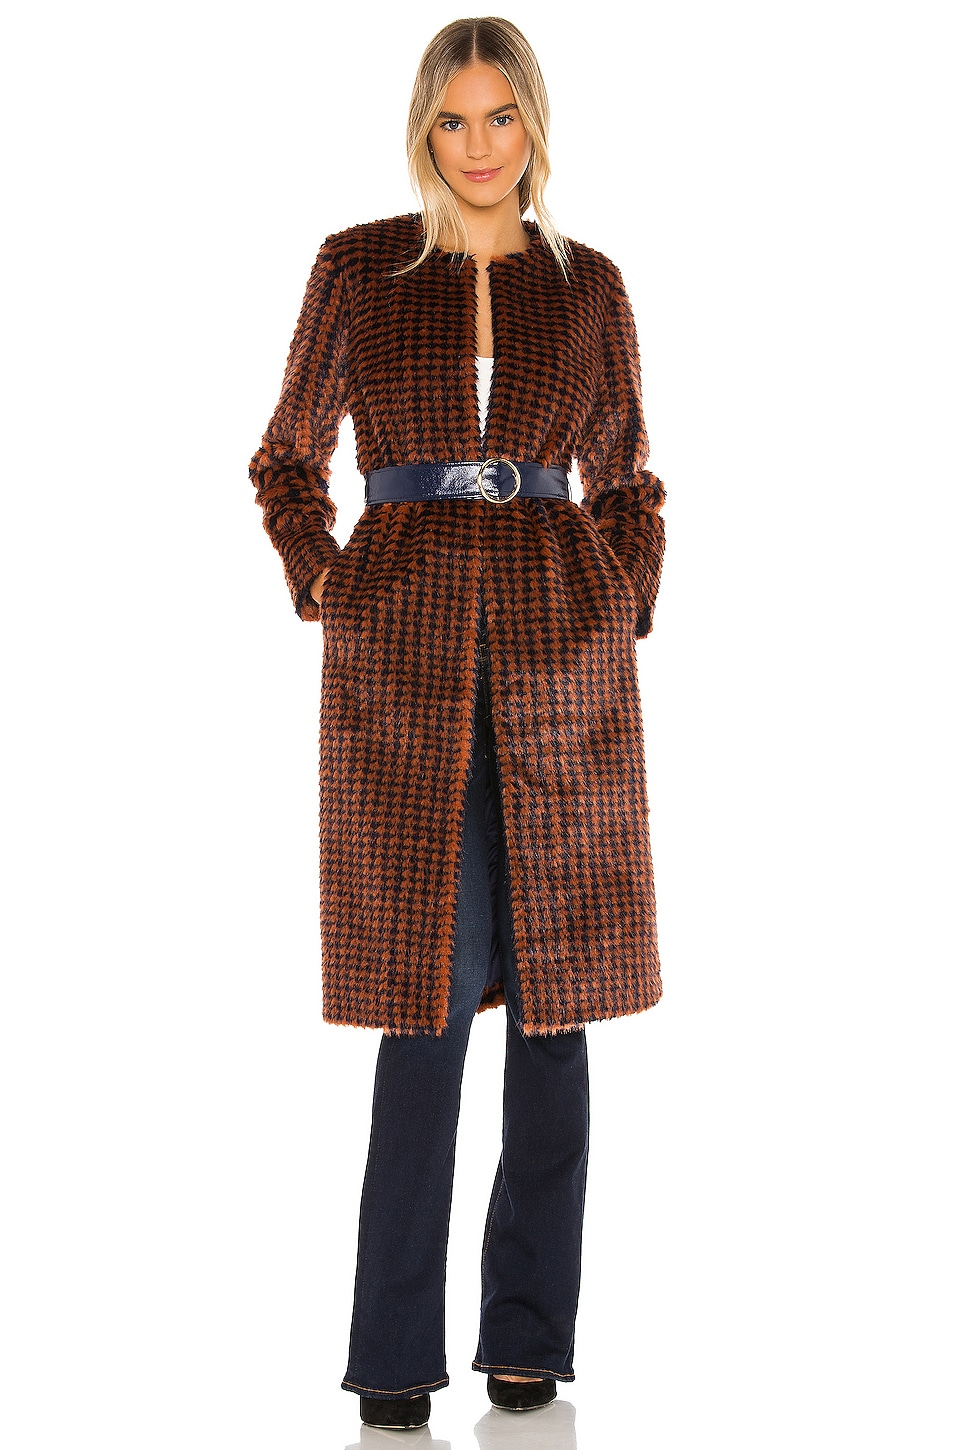 House of Harlow 1960 x REVOLVE Cayson Coat in Navy & Burnt Orange